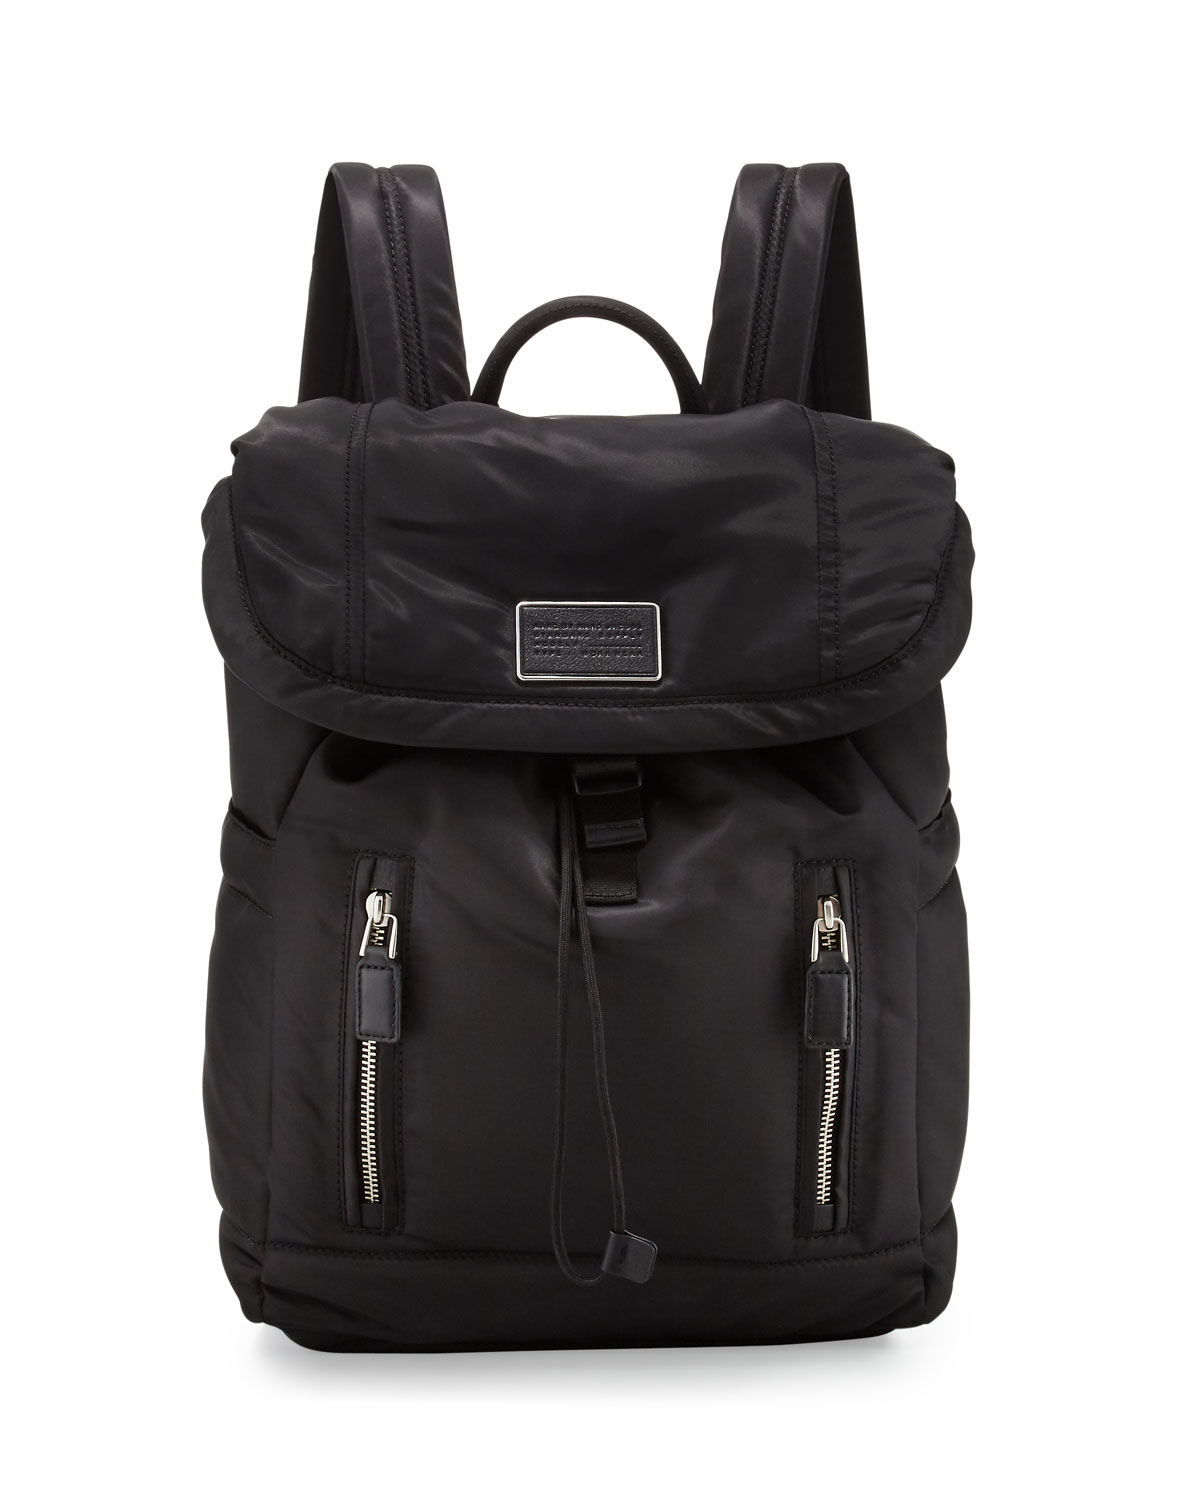 marc by marc jacobs palma nylon backpack in black lyst. Black Bedroom Furniture Sets. Home Design Ideas